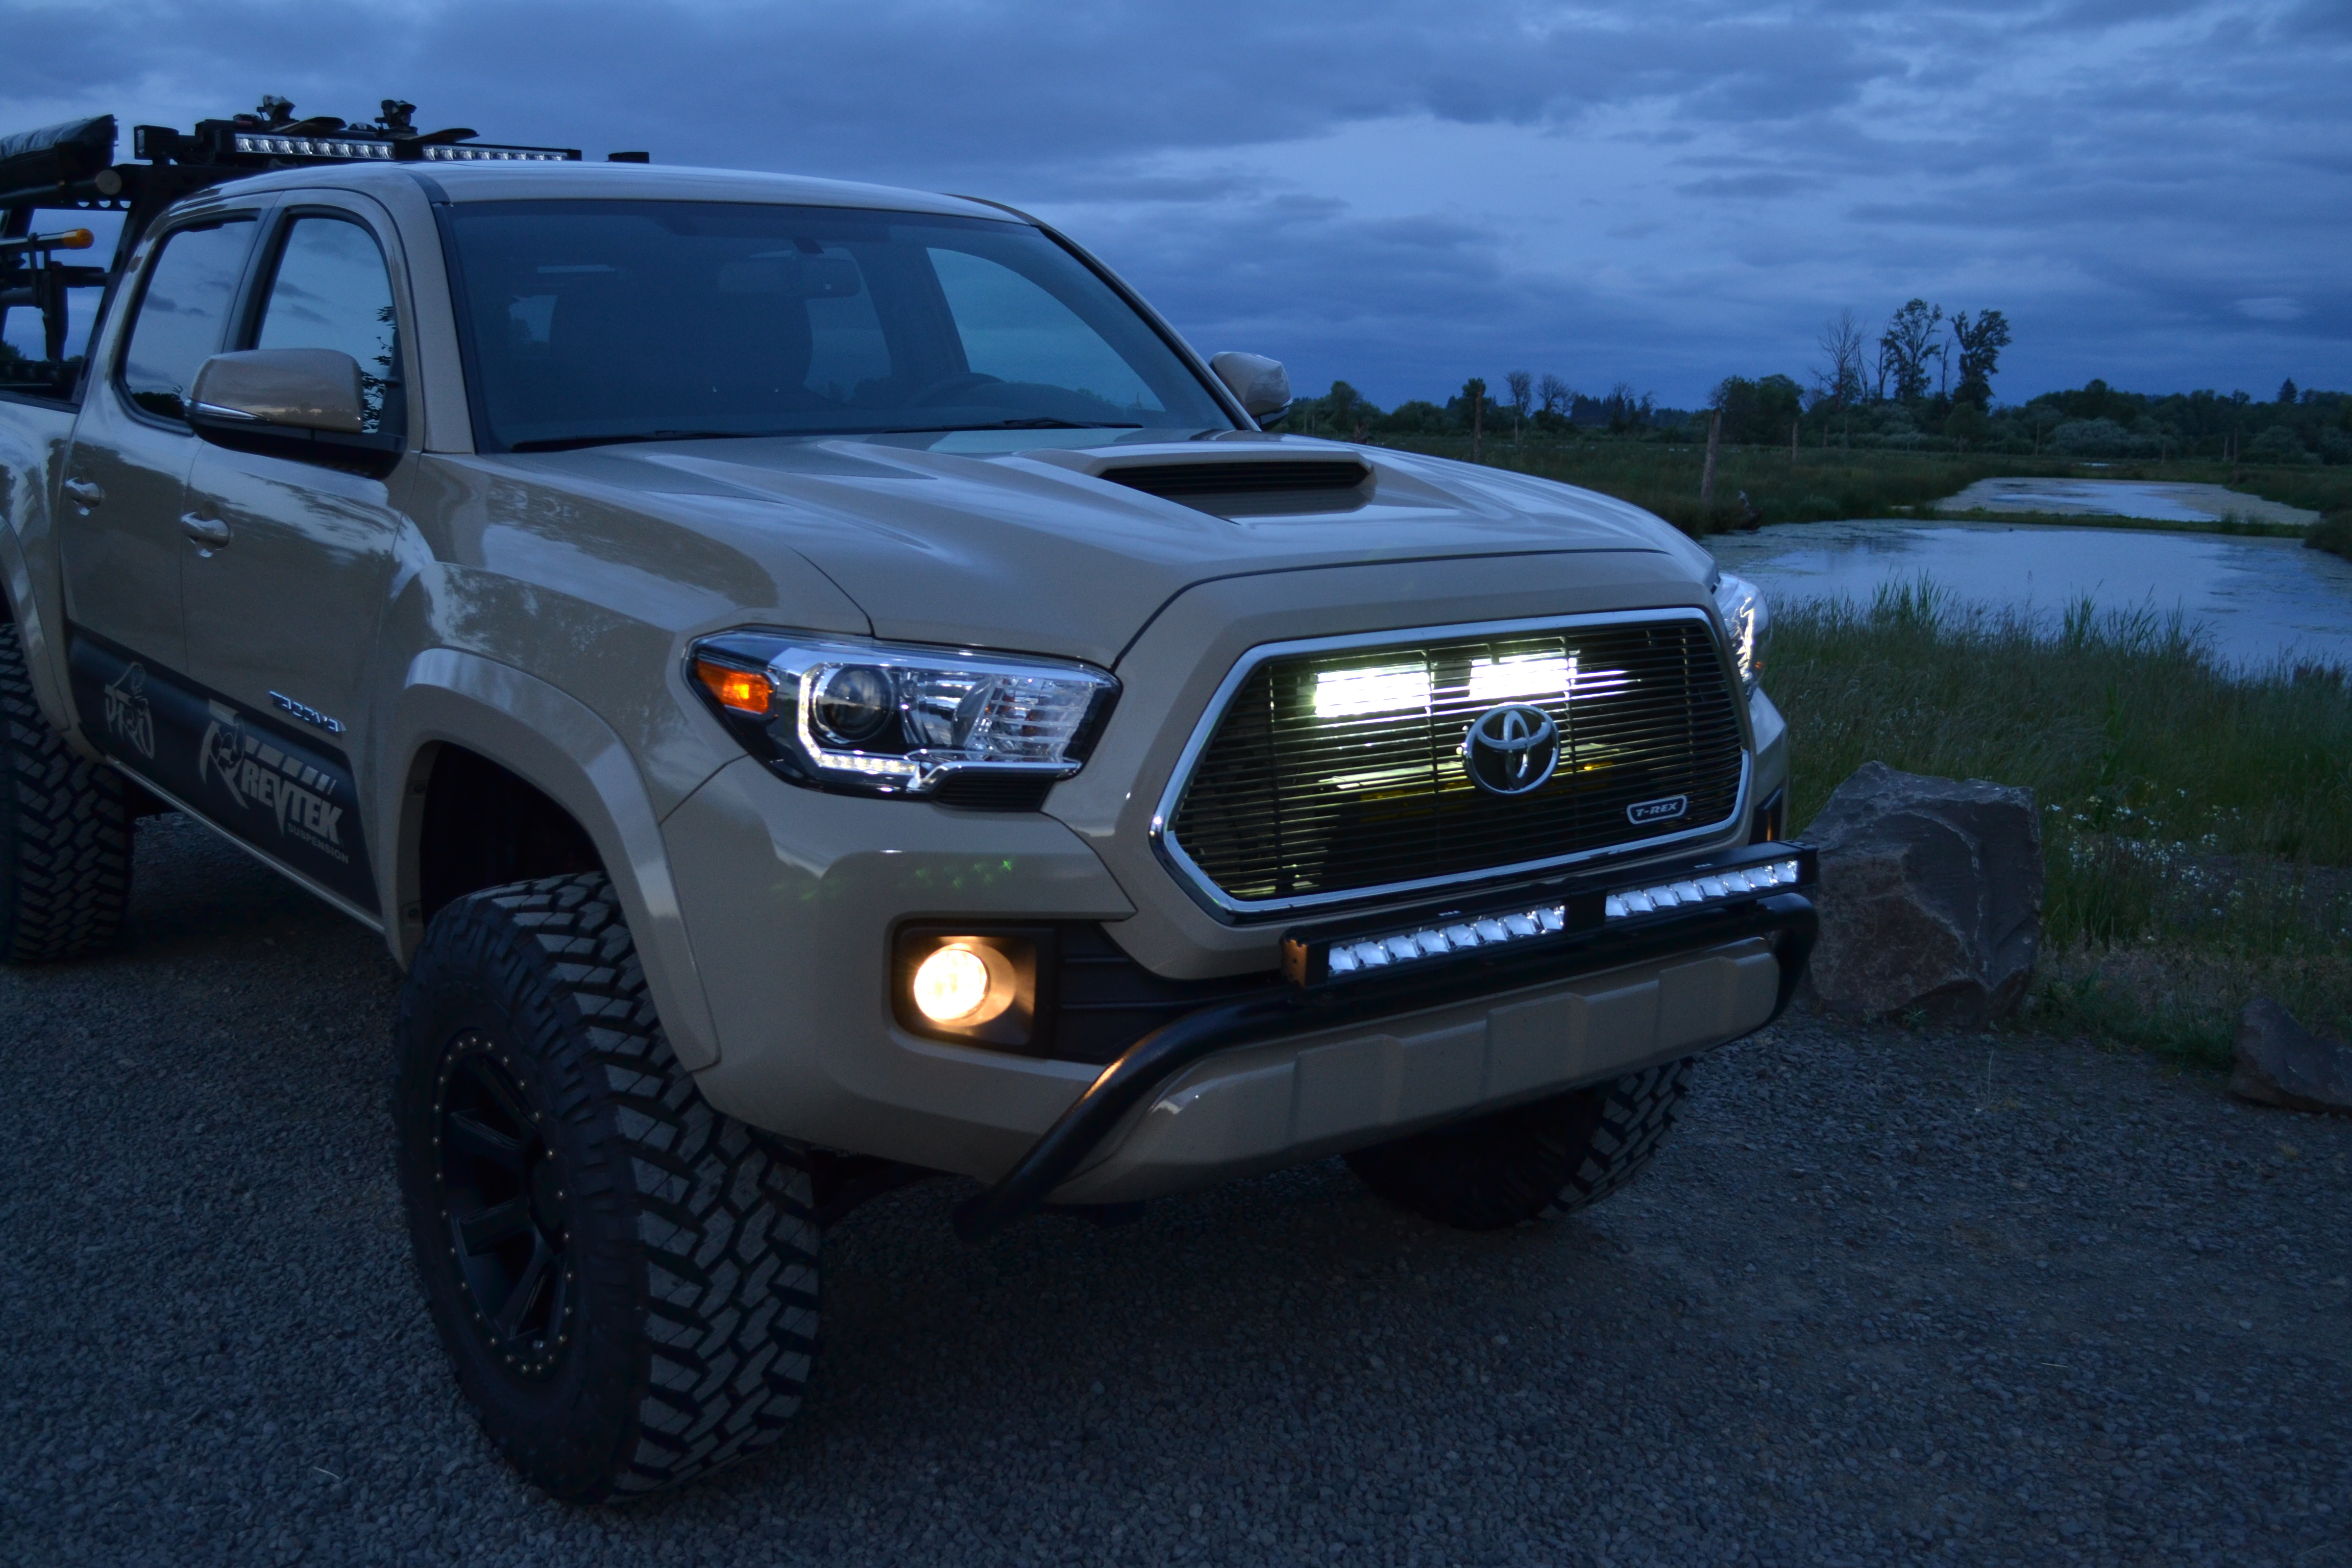 2016 Tacoma Behind the Grille Light Mount